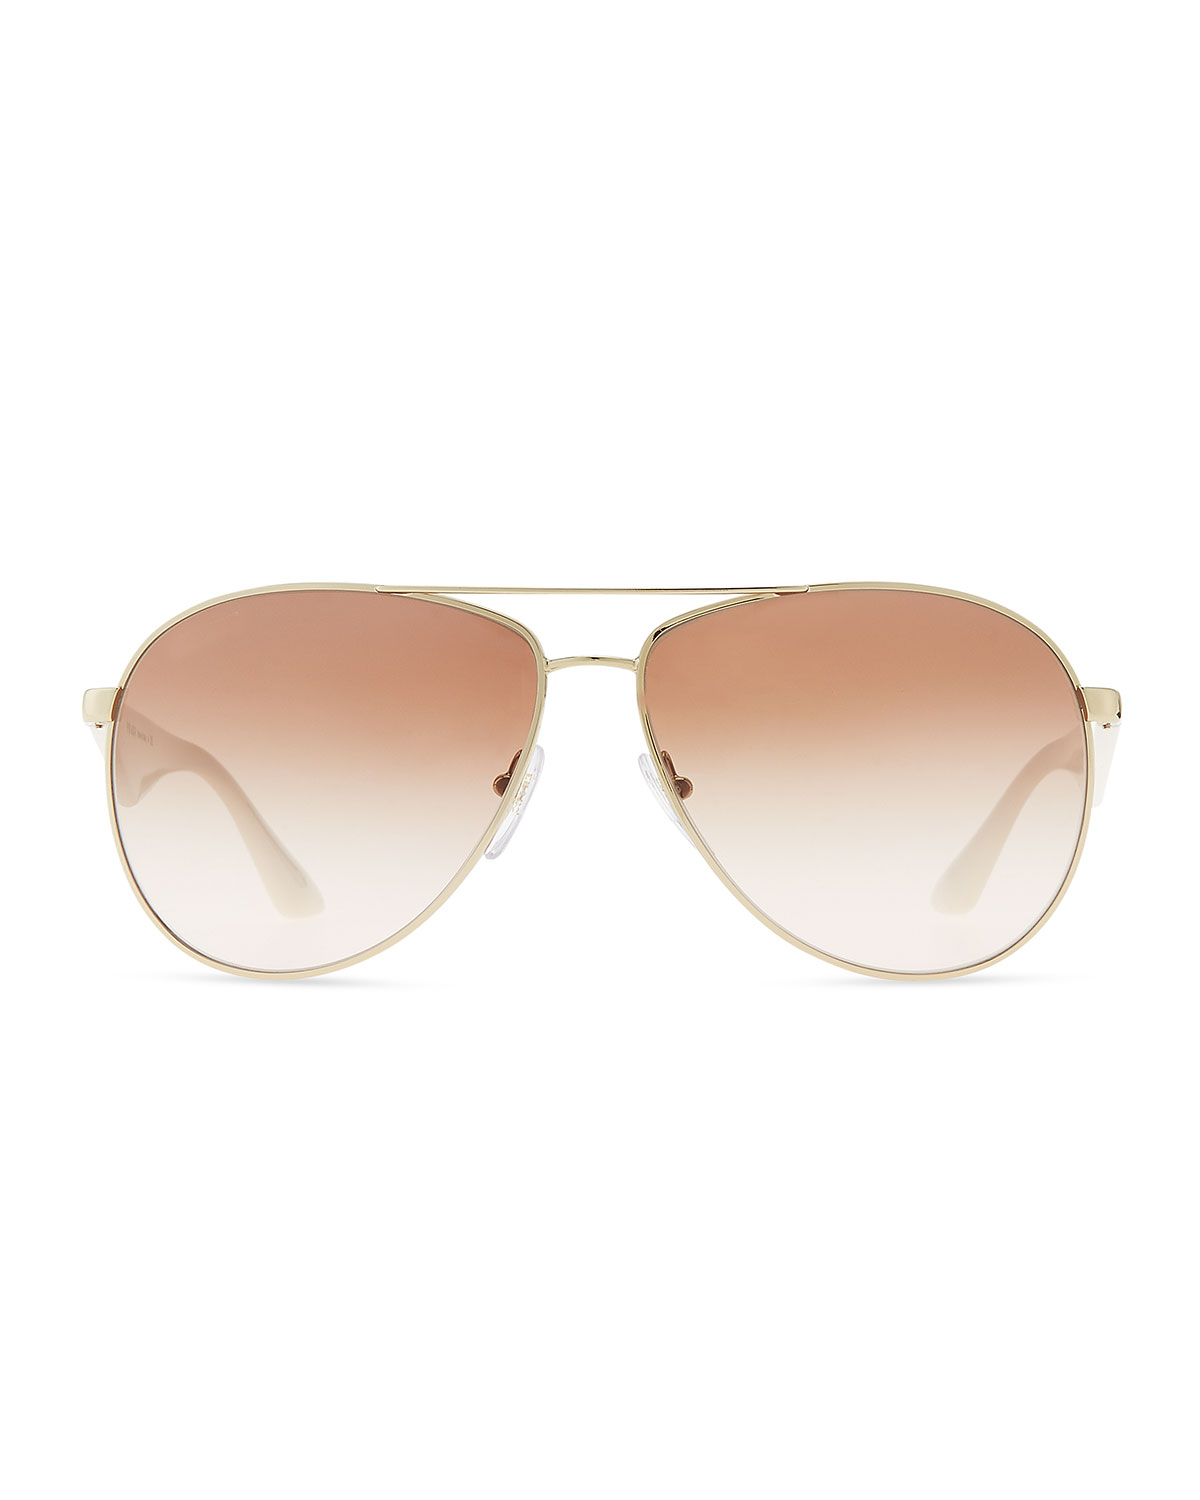 33e491785c6 Gallery. Previously sold at  Bergdorf Goodman · Women s Mirrored Sunglasses  ...